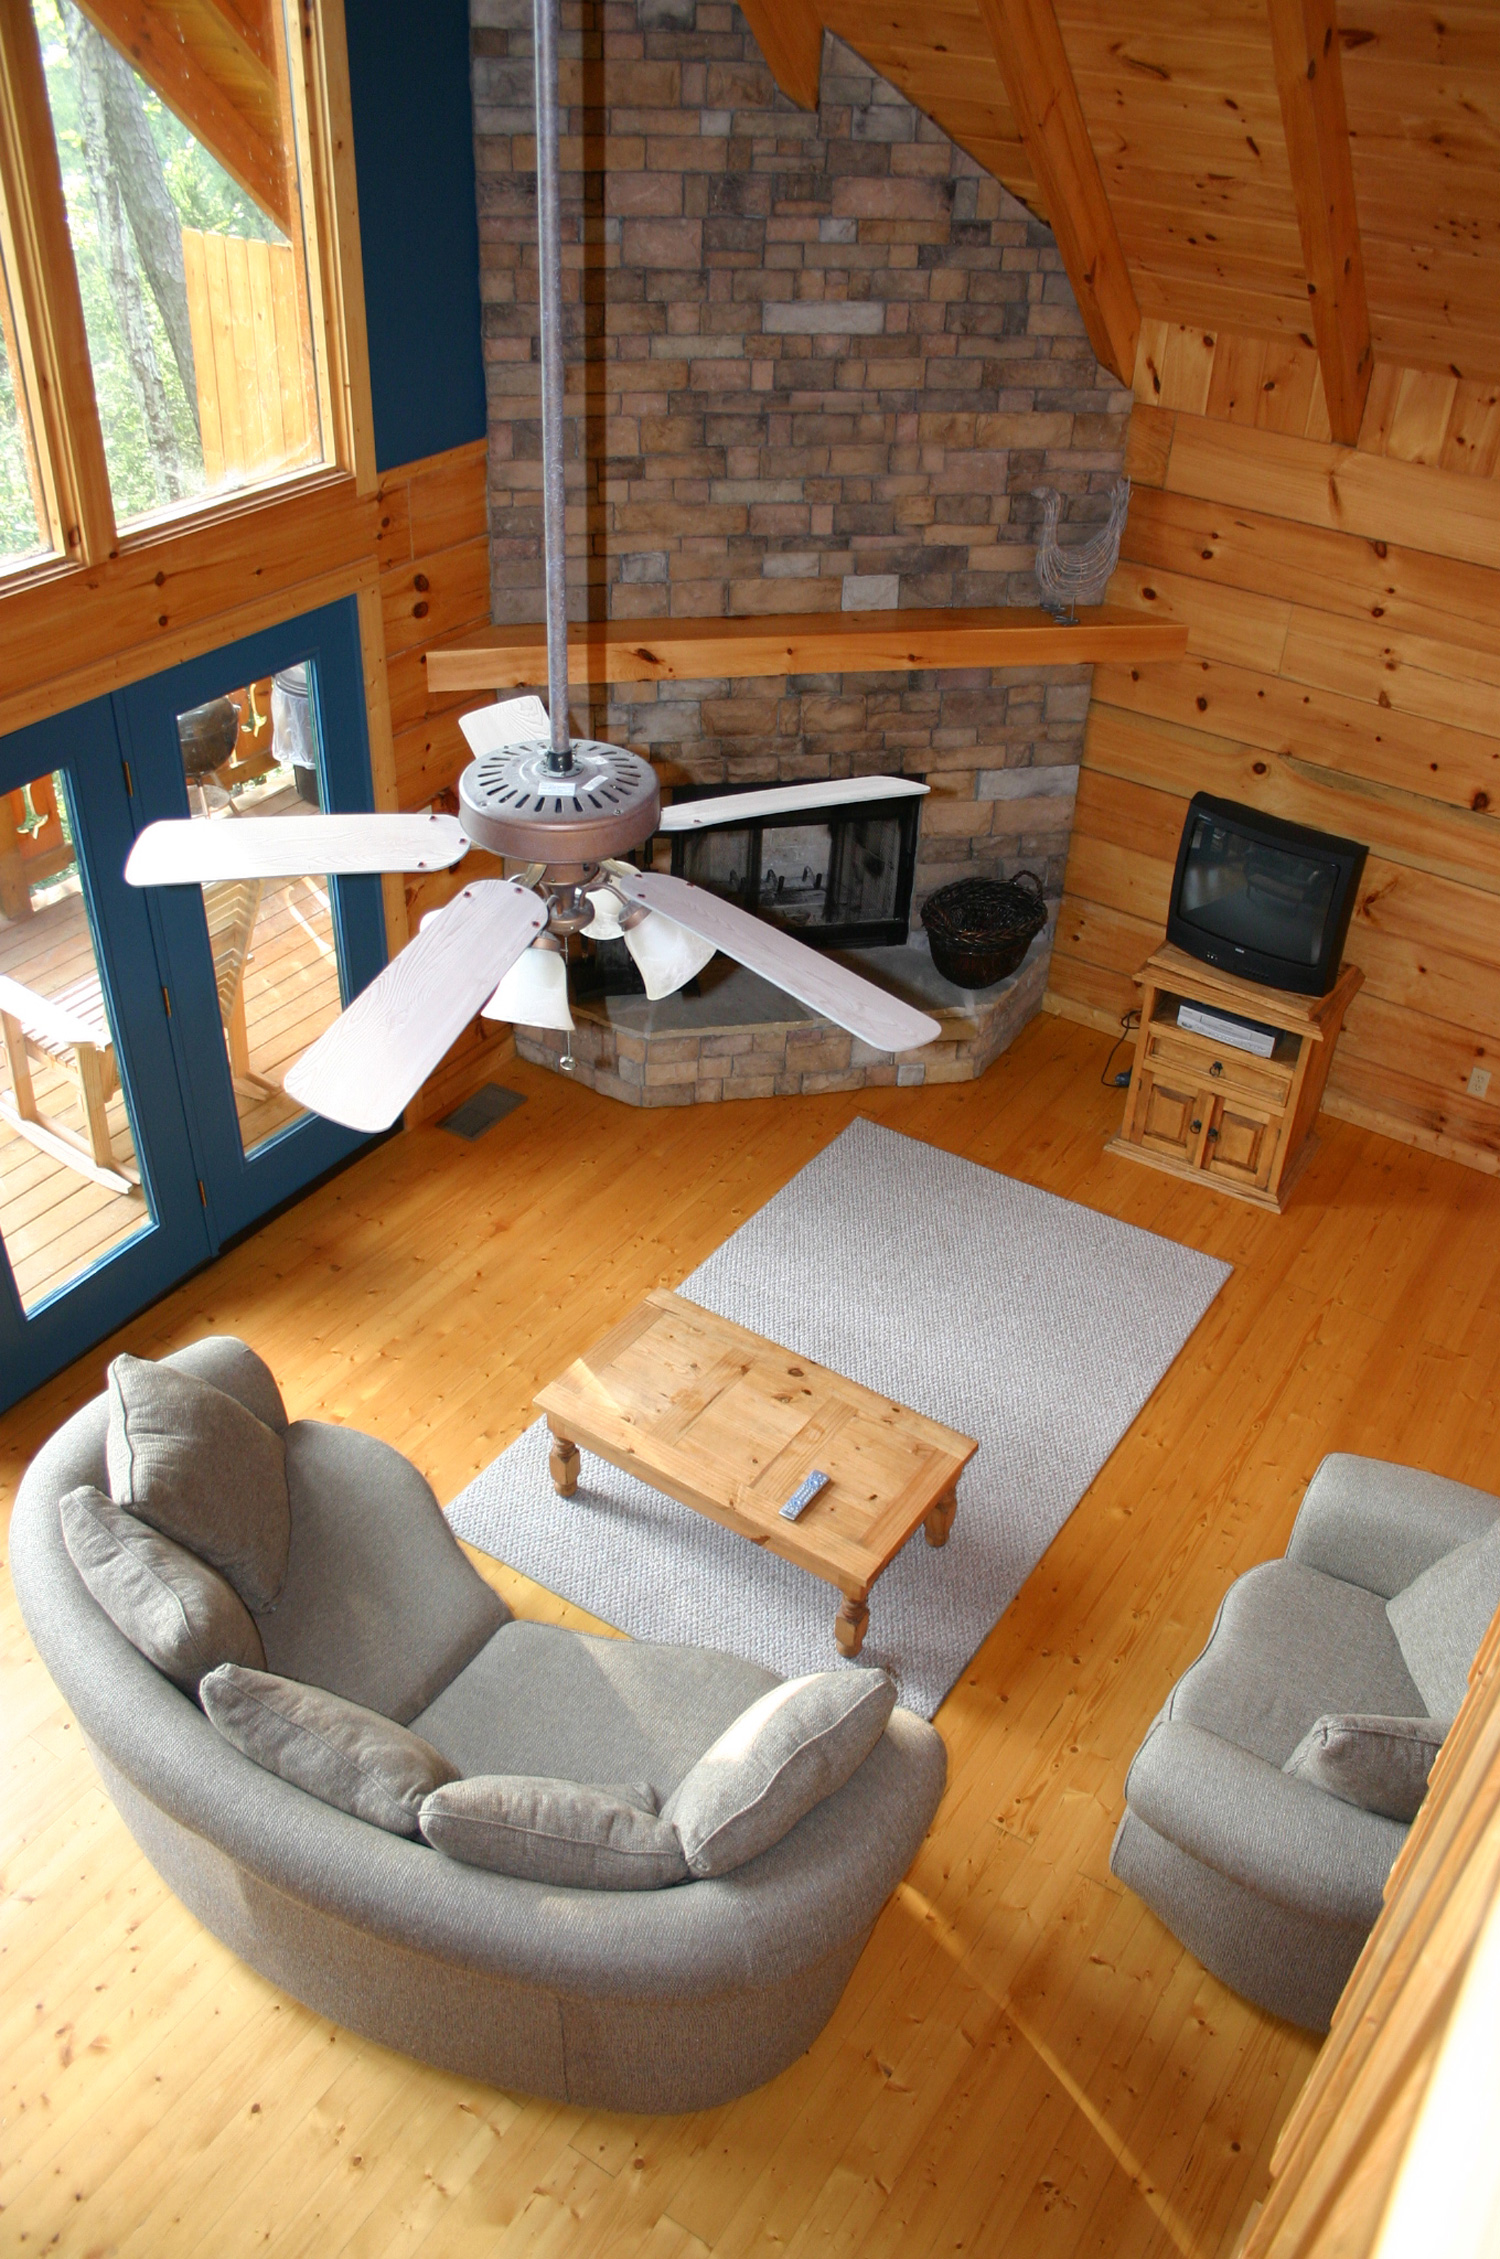 Interior living area of a warm, cozy, cabin in the mountains.